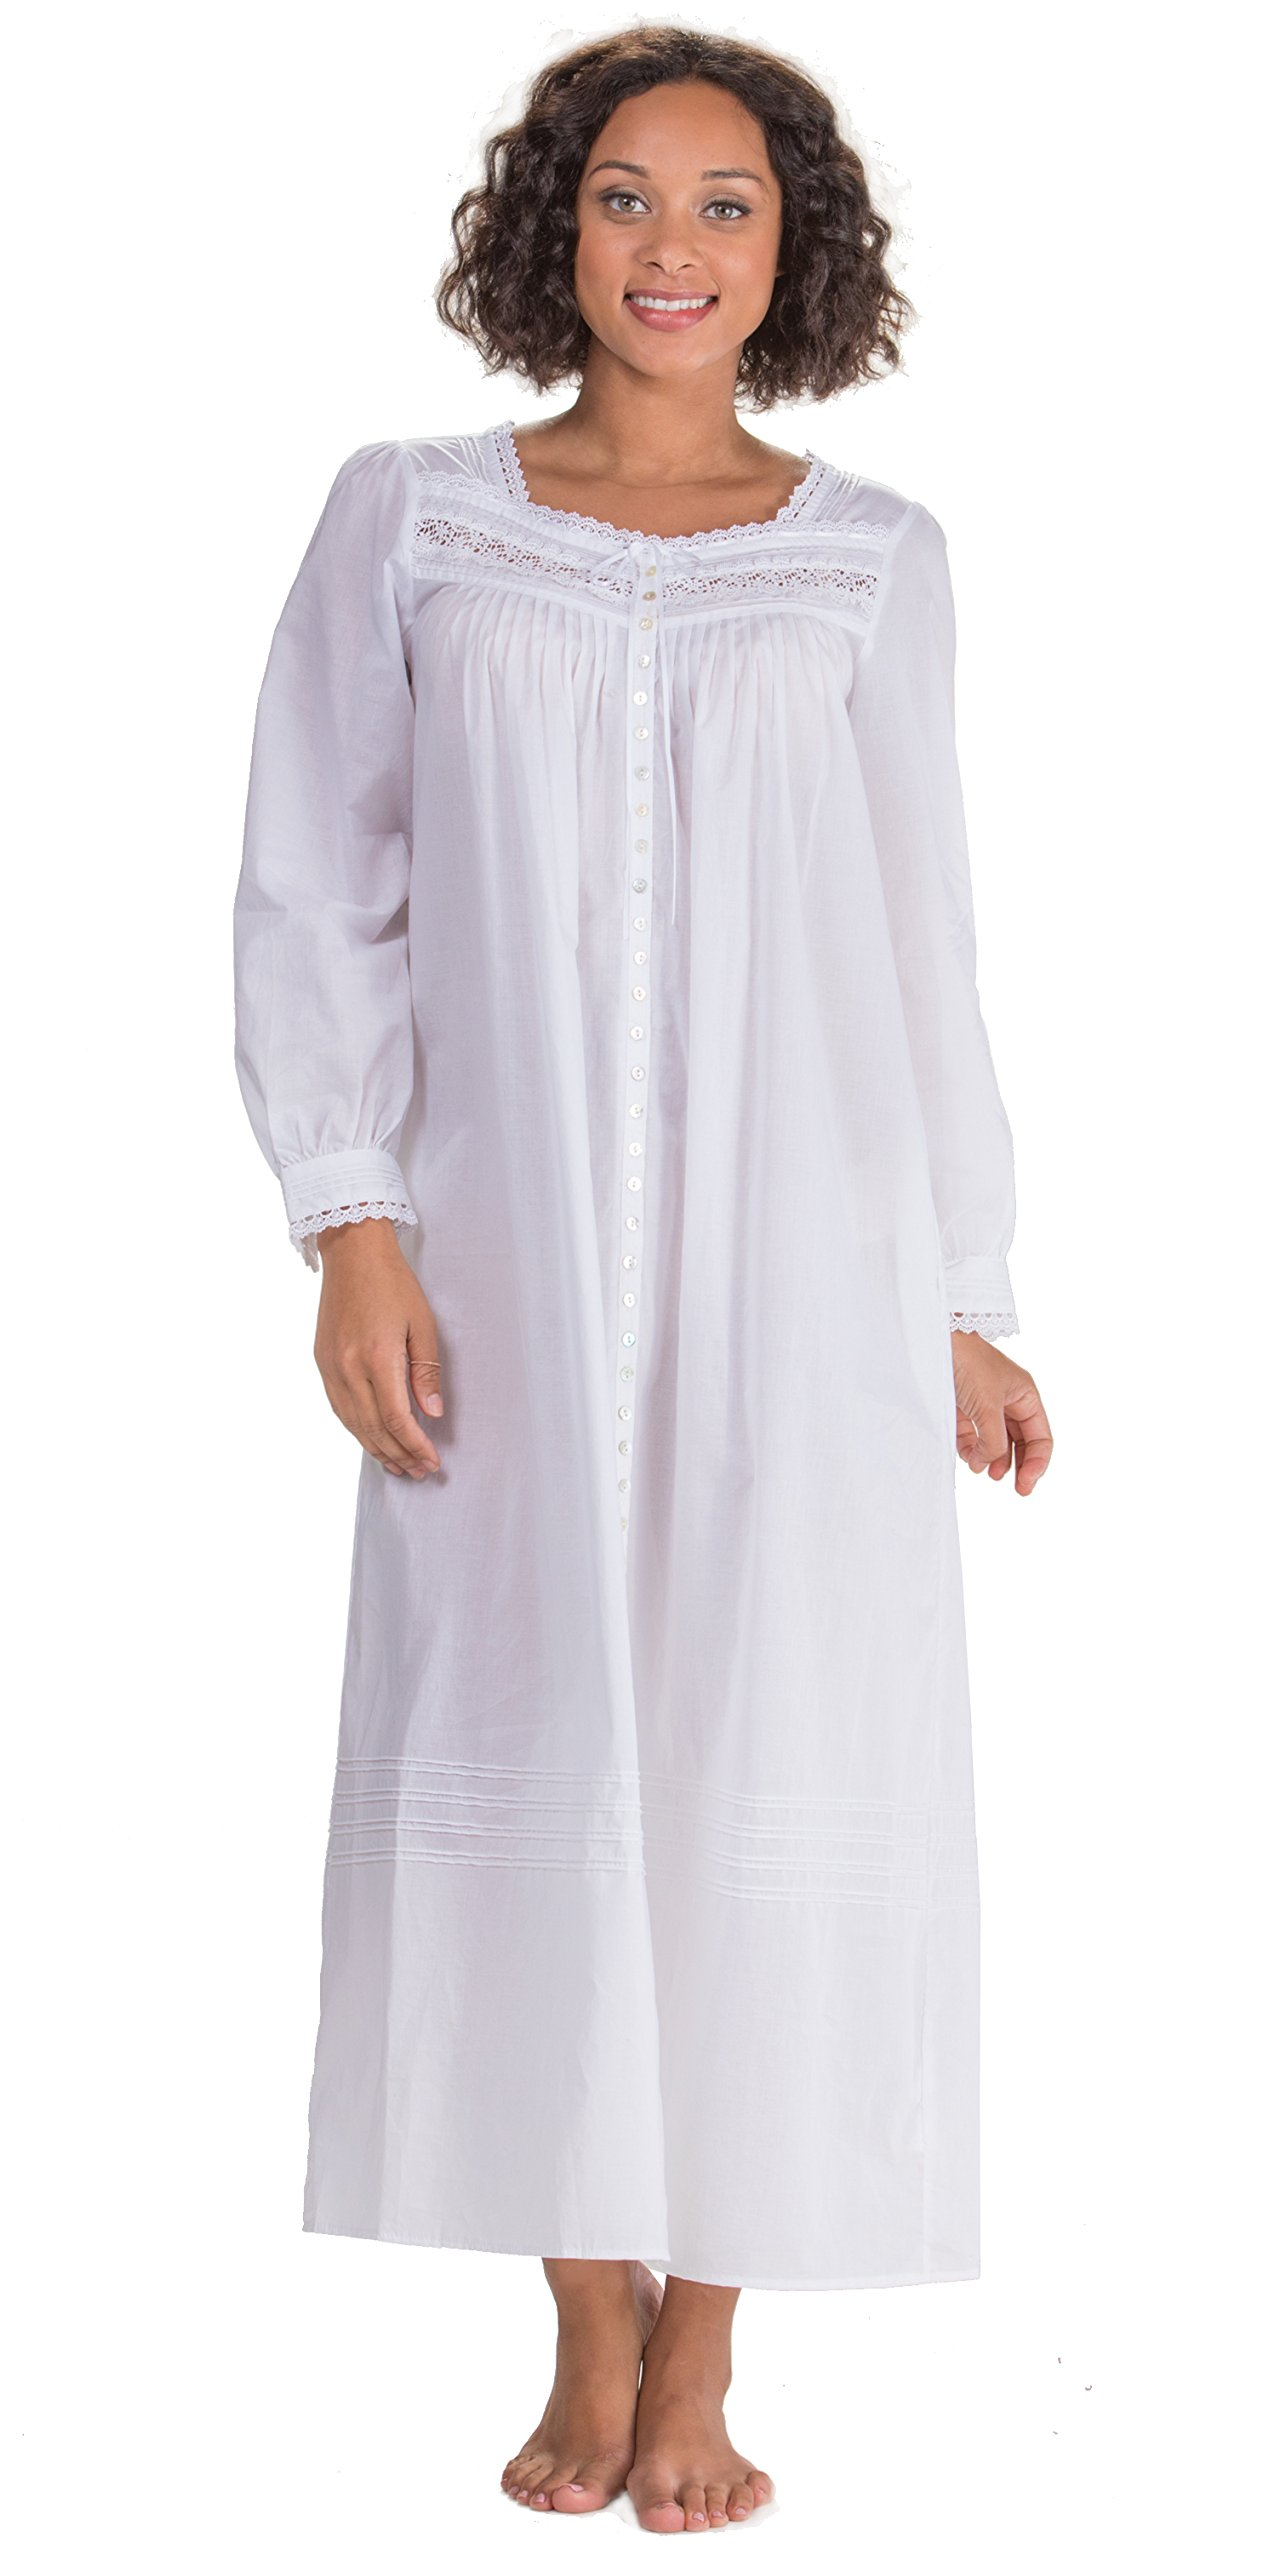 Eileen West Peignoir Set by White Cotton Gown & Robe In Magnolia (White, Large) by Eileen West (Image #2)